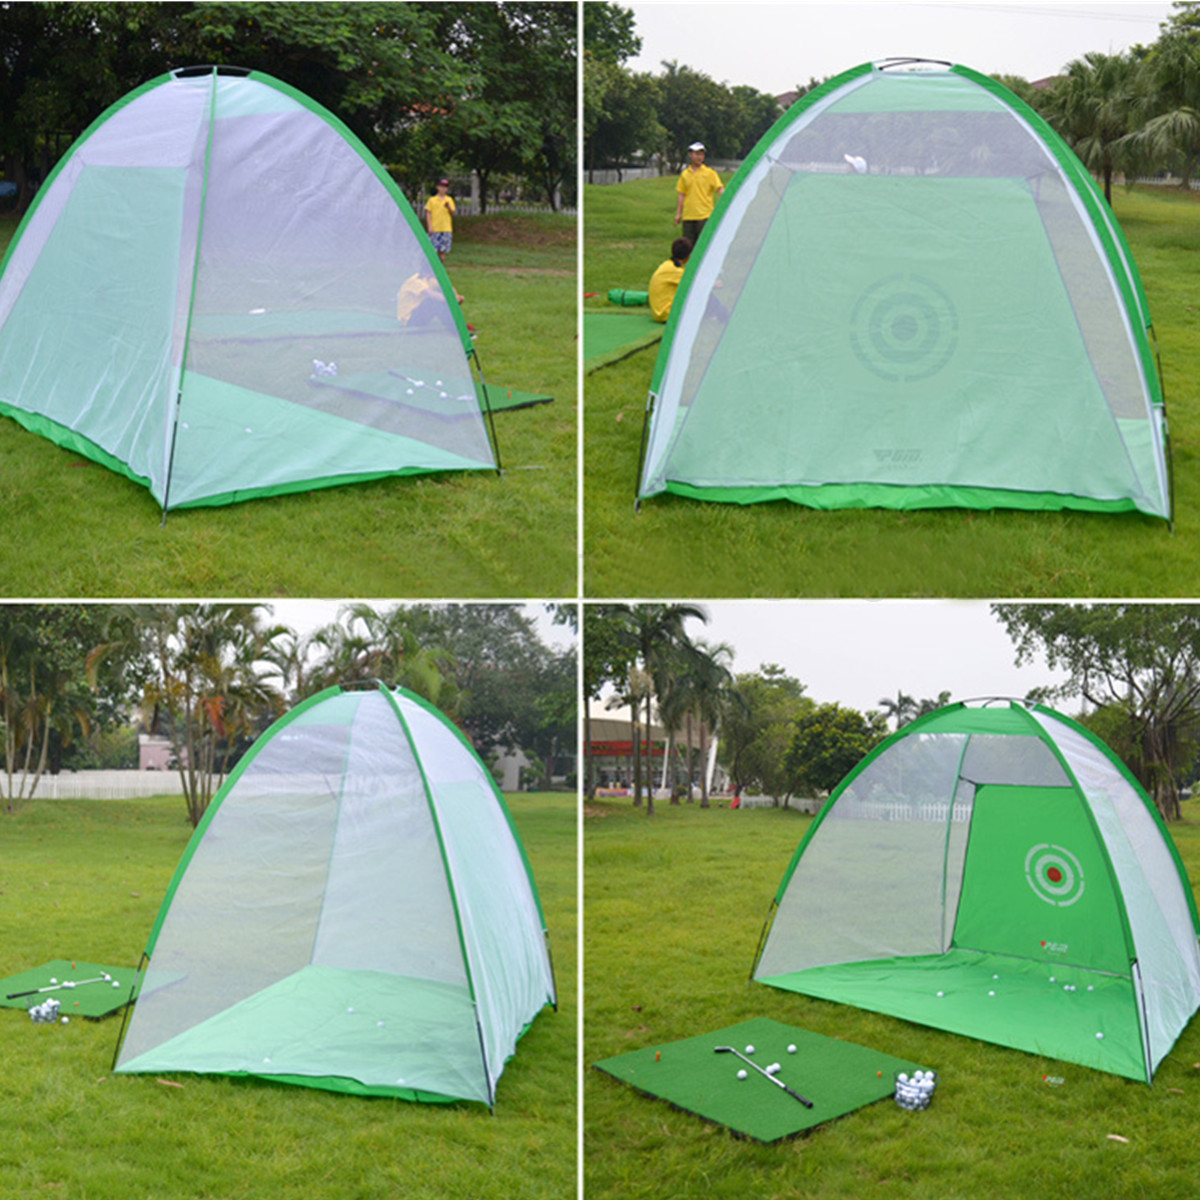 2*1.4m Golf Training Net Golf Practice Nets Indoor Outdoor Garden Training Portable Golf Practice Tent Golf Training Equipment-in Golf Training Aids from Sports & Entertainment